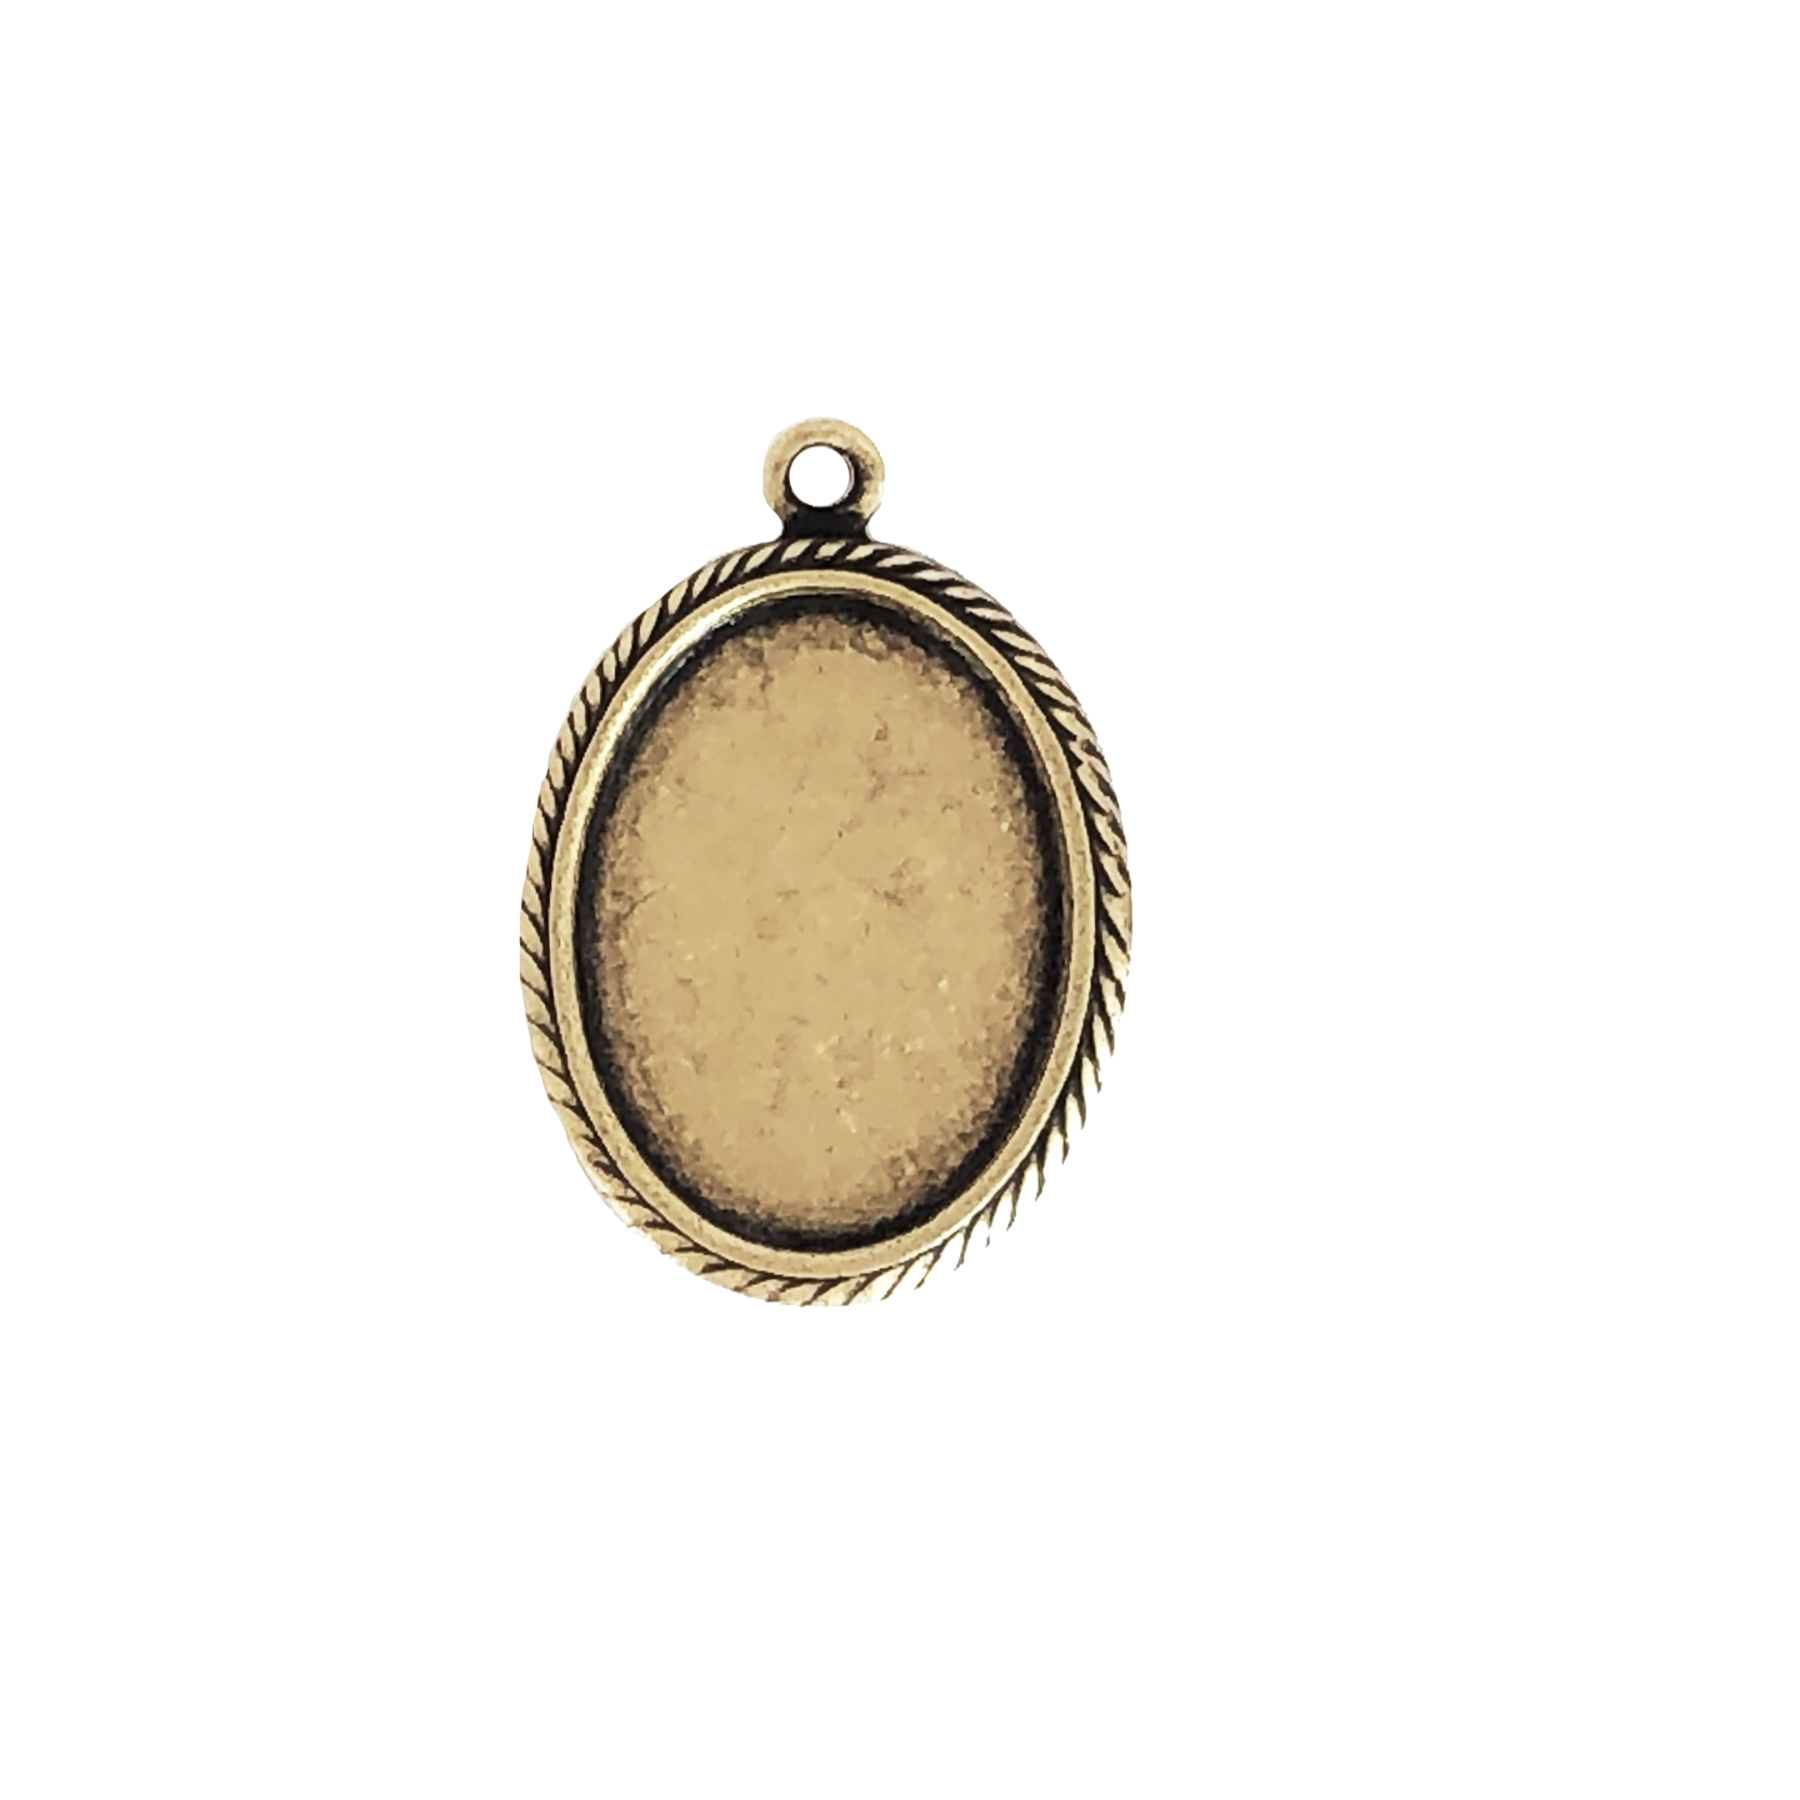 Brass Mount, Cameo Mount, Antique Brass, Bezel, Mount, Pendent Style, Brass Ox, Brass Stamping, 13 x 10mm, Earring, Jewelry Findings, Nickel Free, Made in USA, B'sue Boutiques, Earring drop, 0700